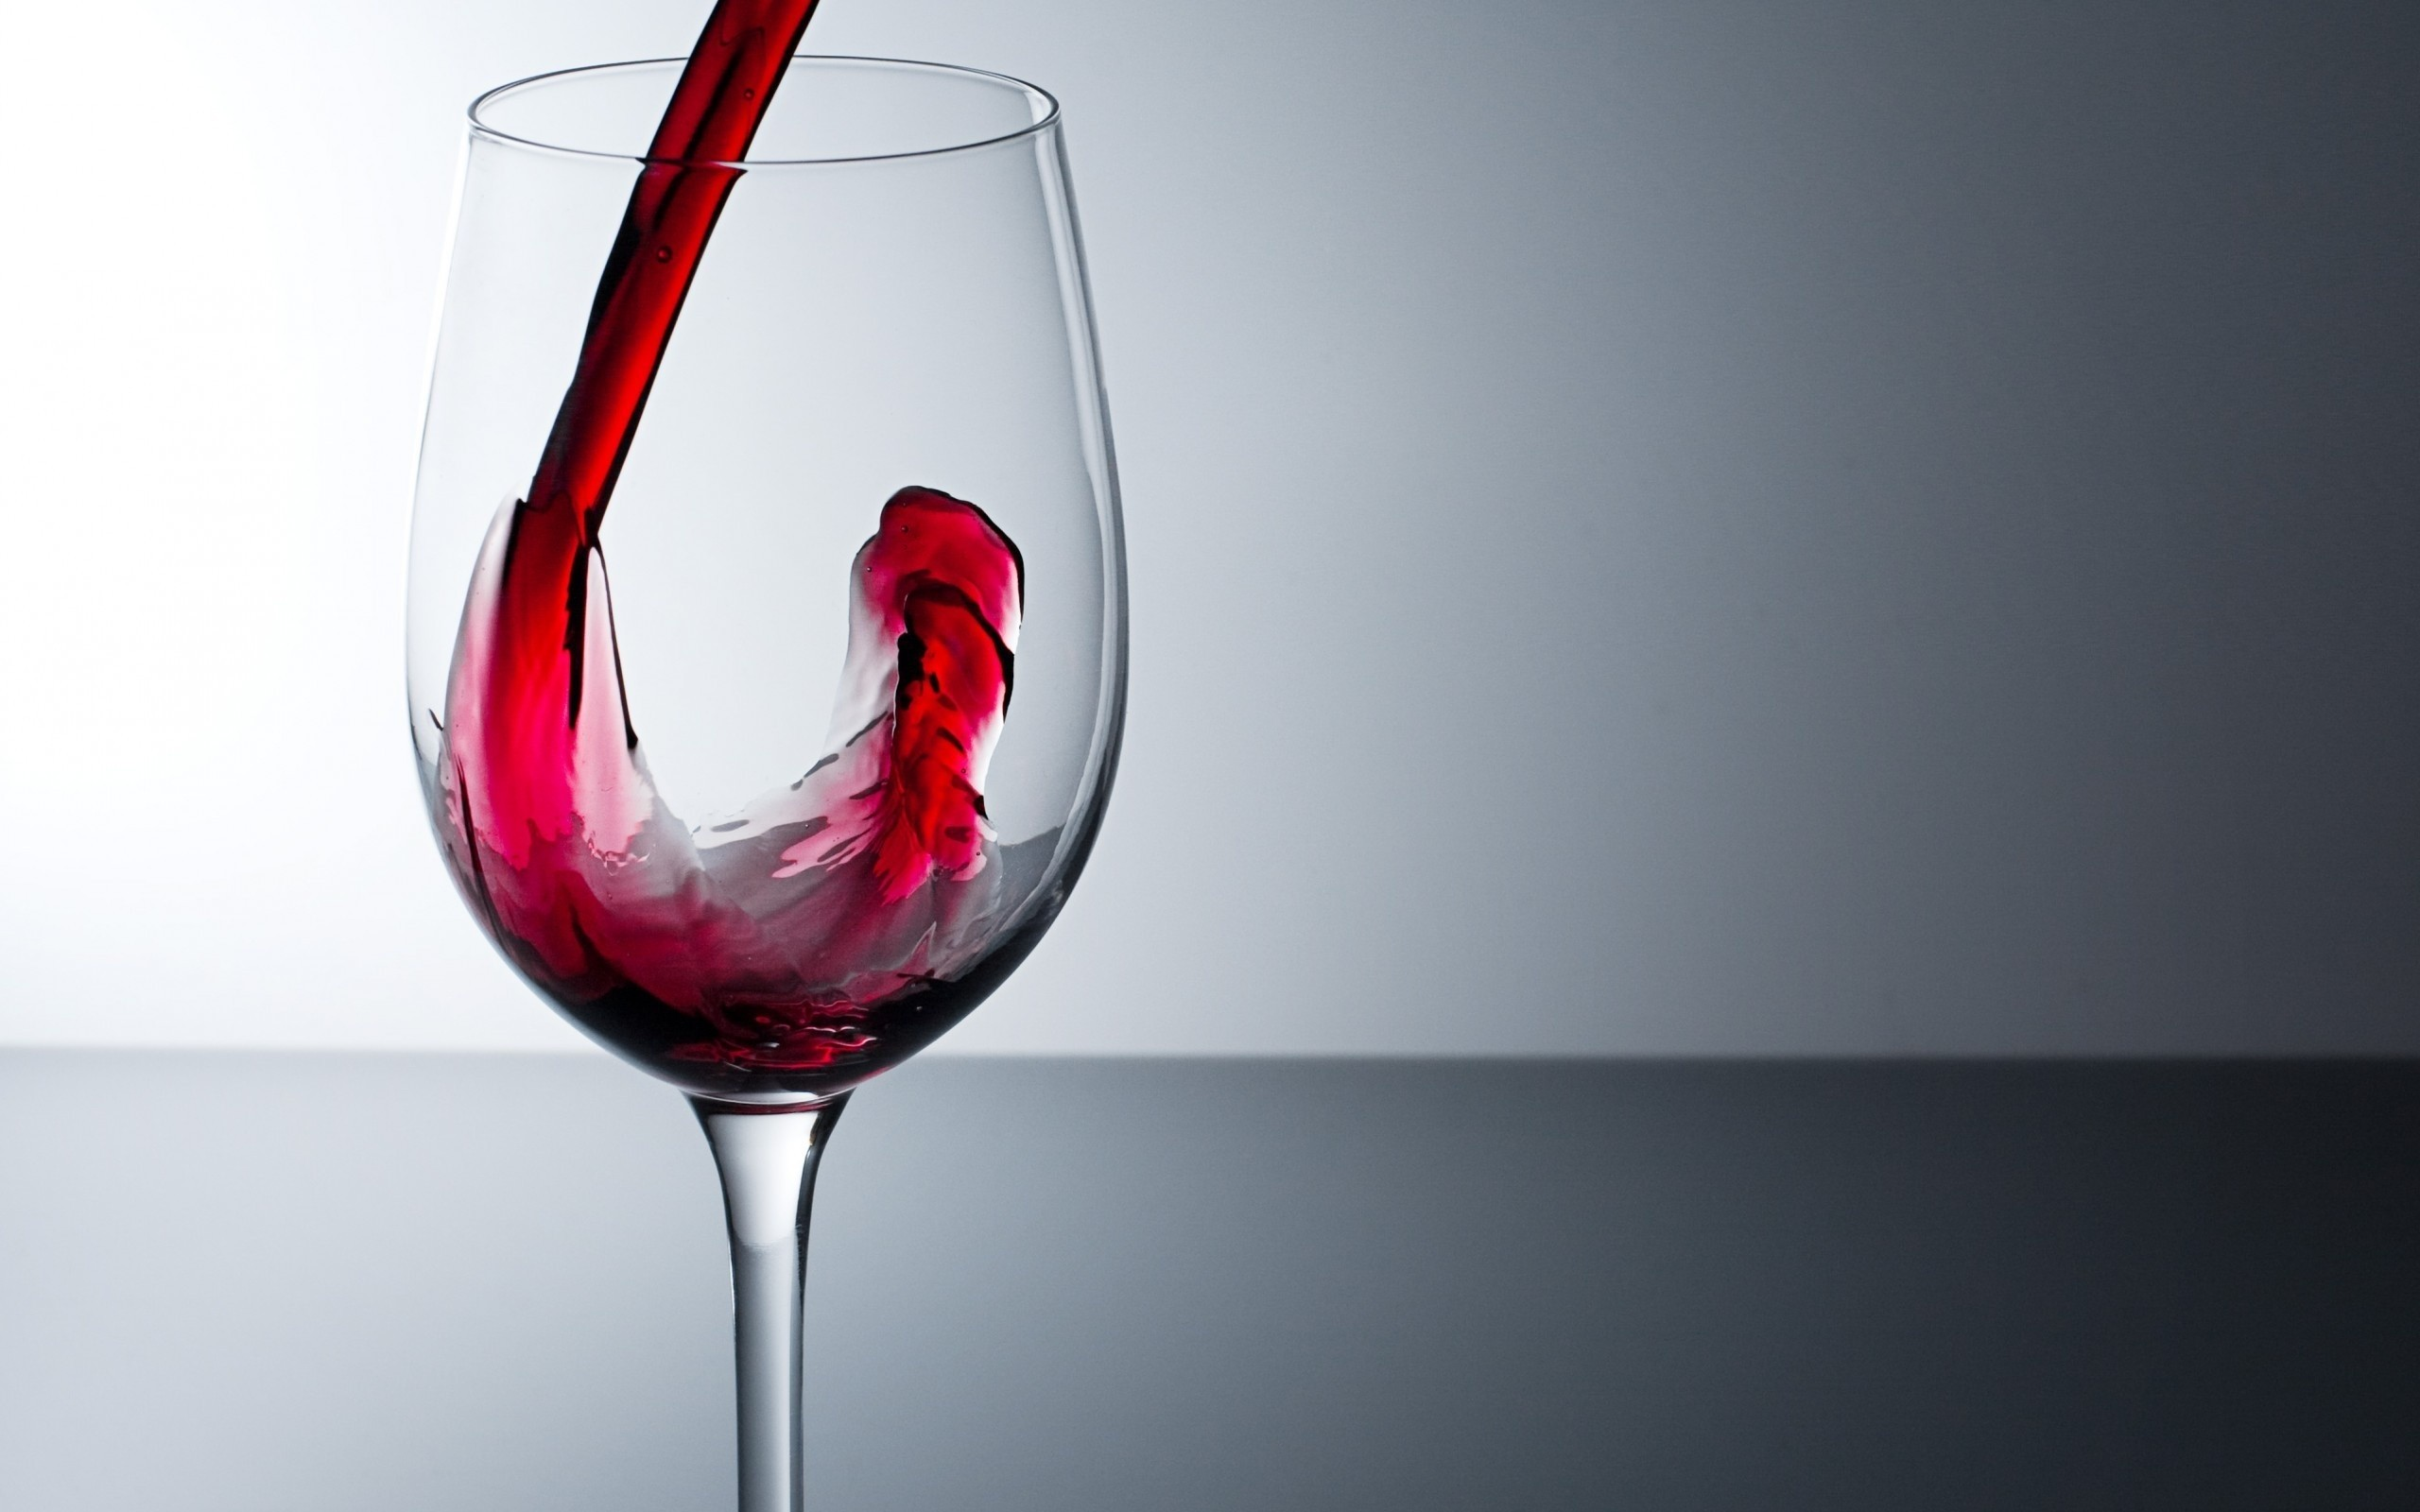 High Quality Wine Glasses Wine Wallpapers High Quality Download Free